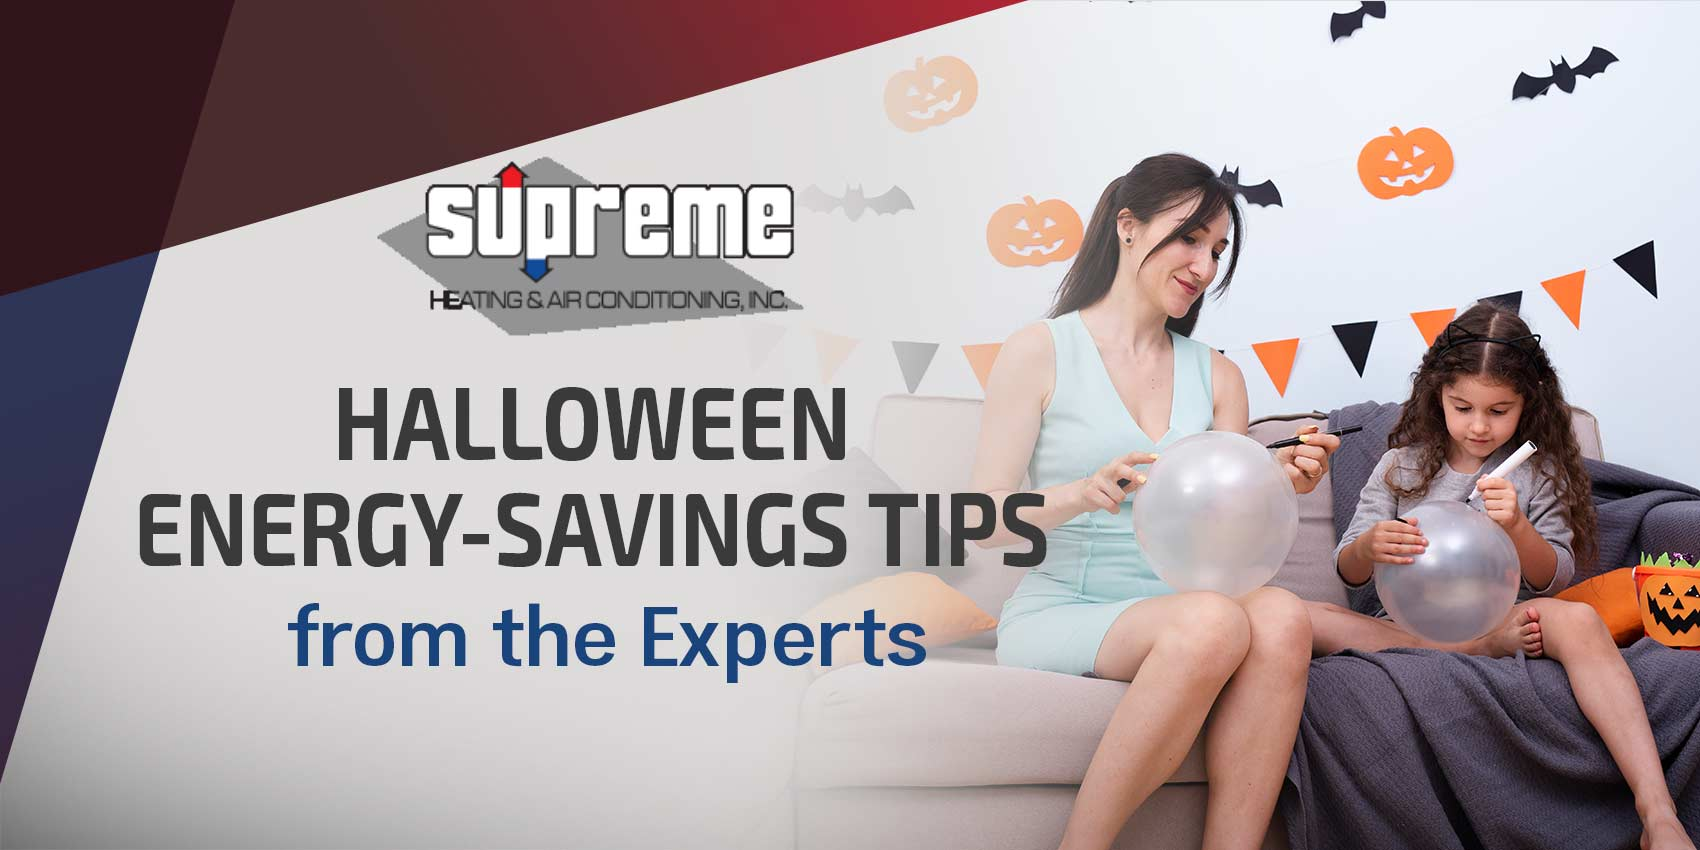 Halloween Energy-Saving Tips From the Experts